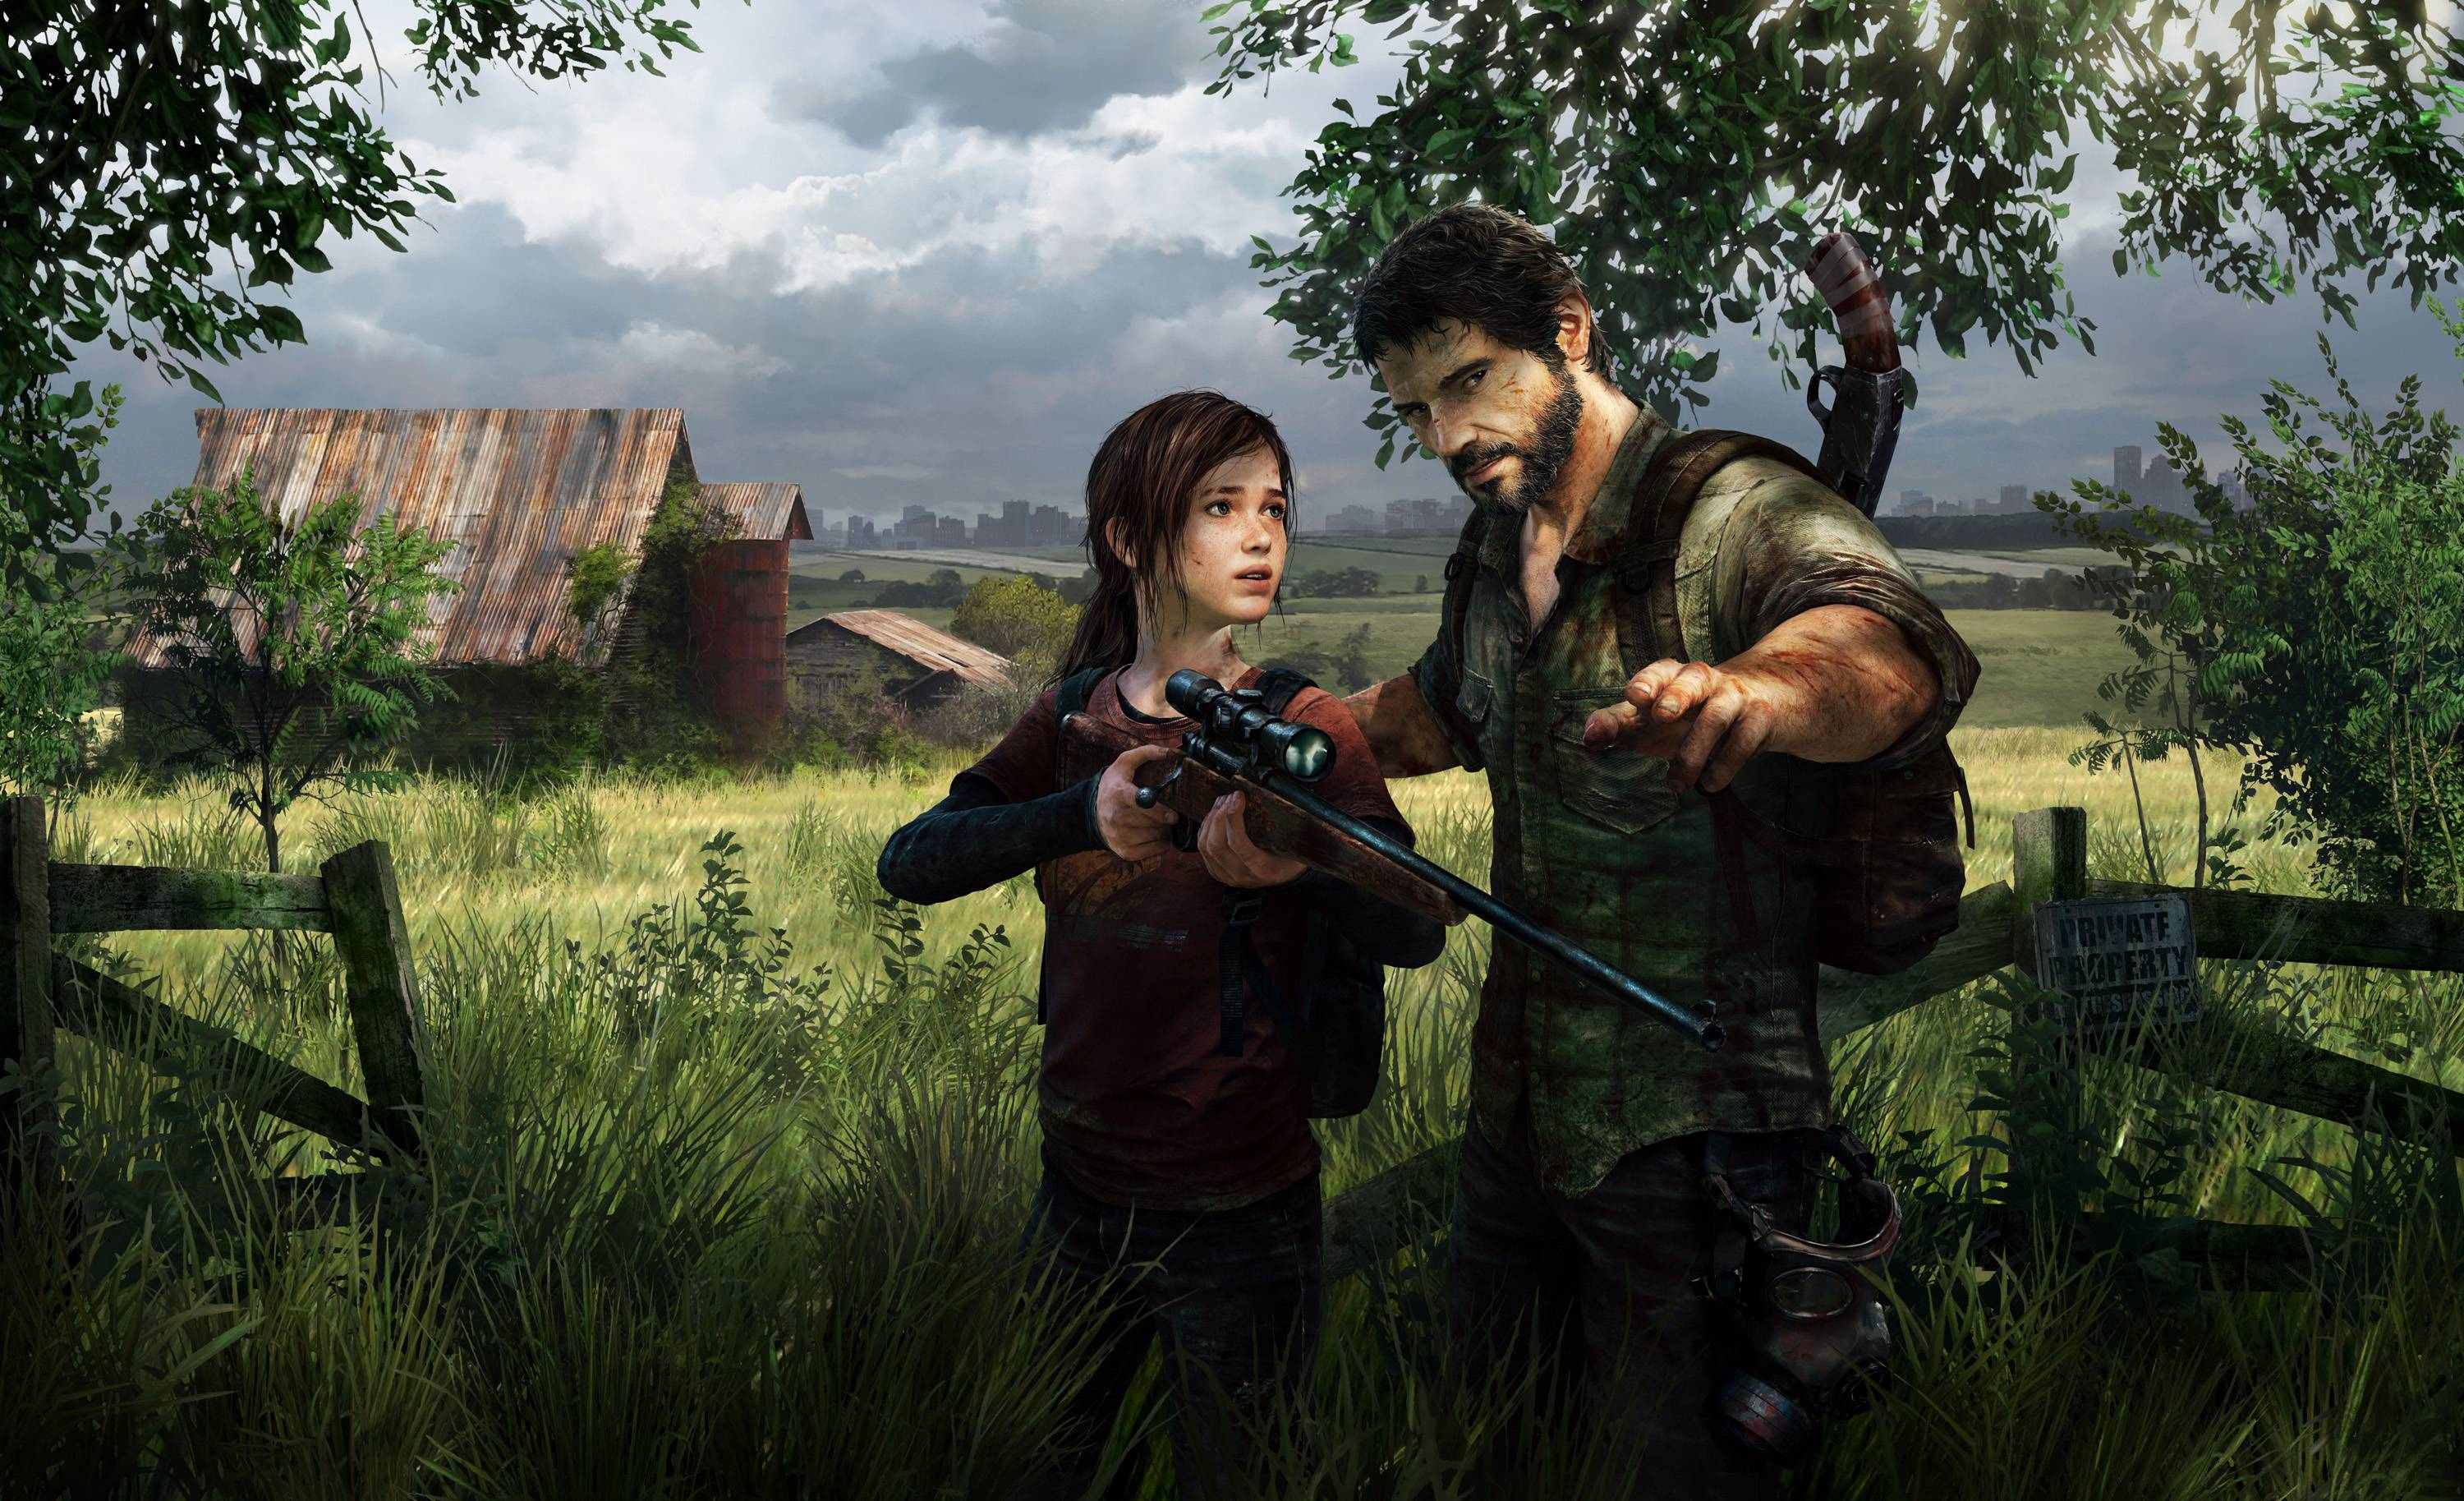 keith mcnally release a free ebook based on the last of us